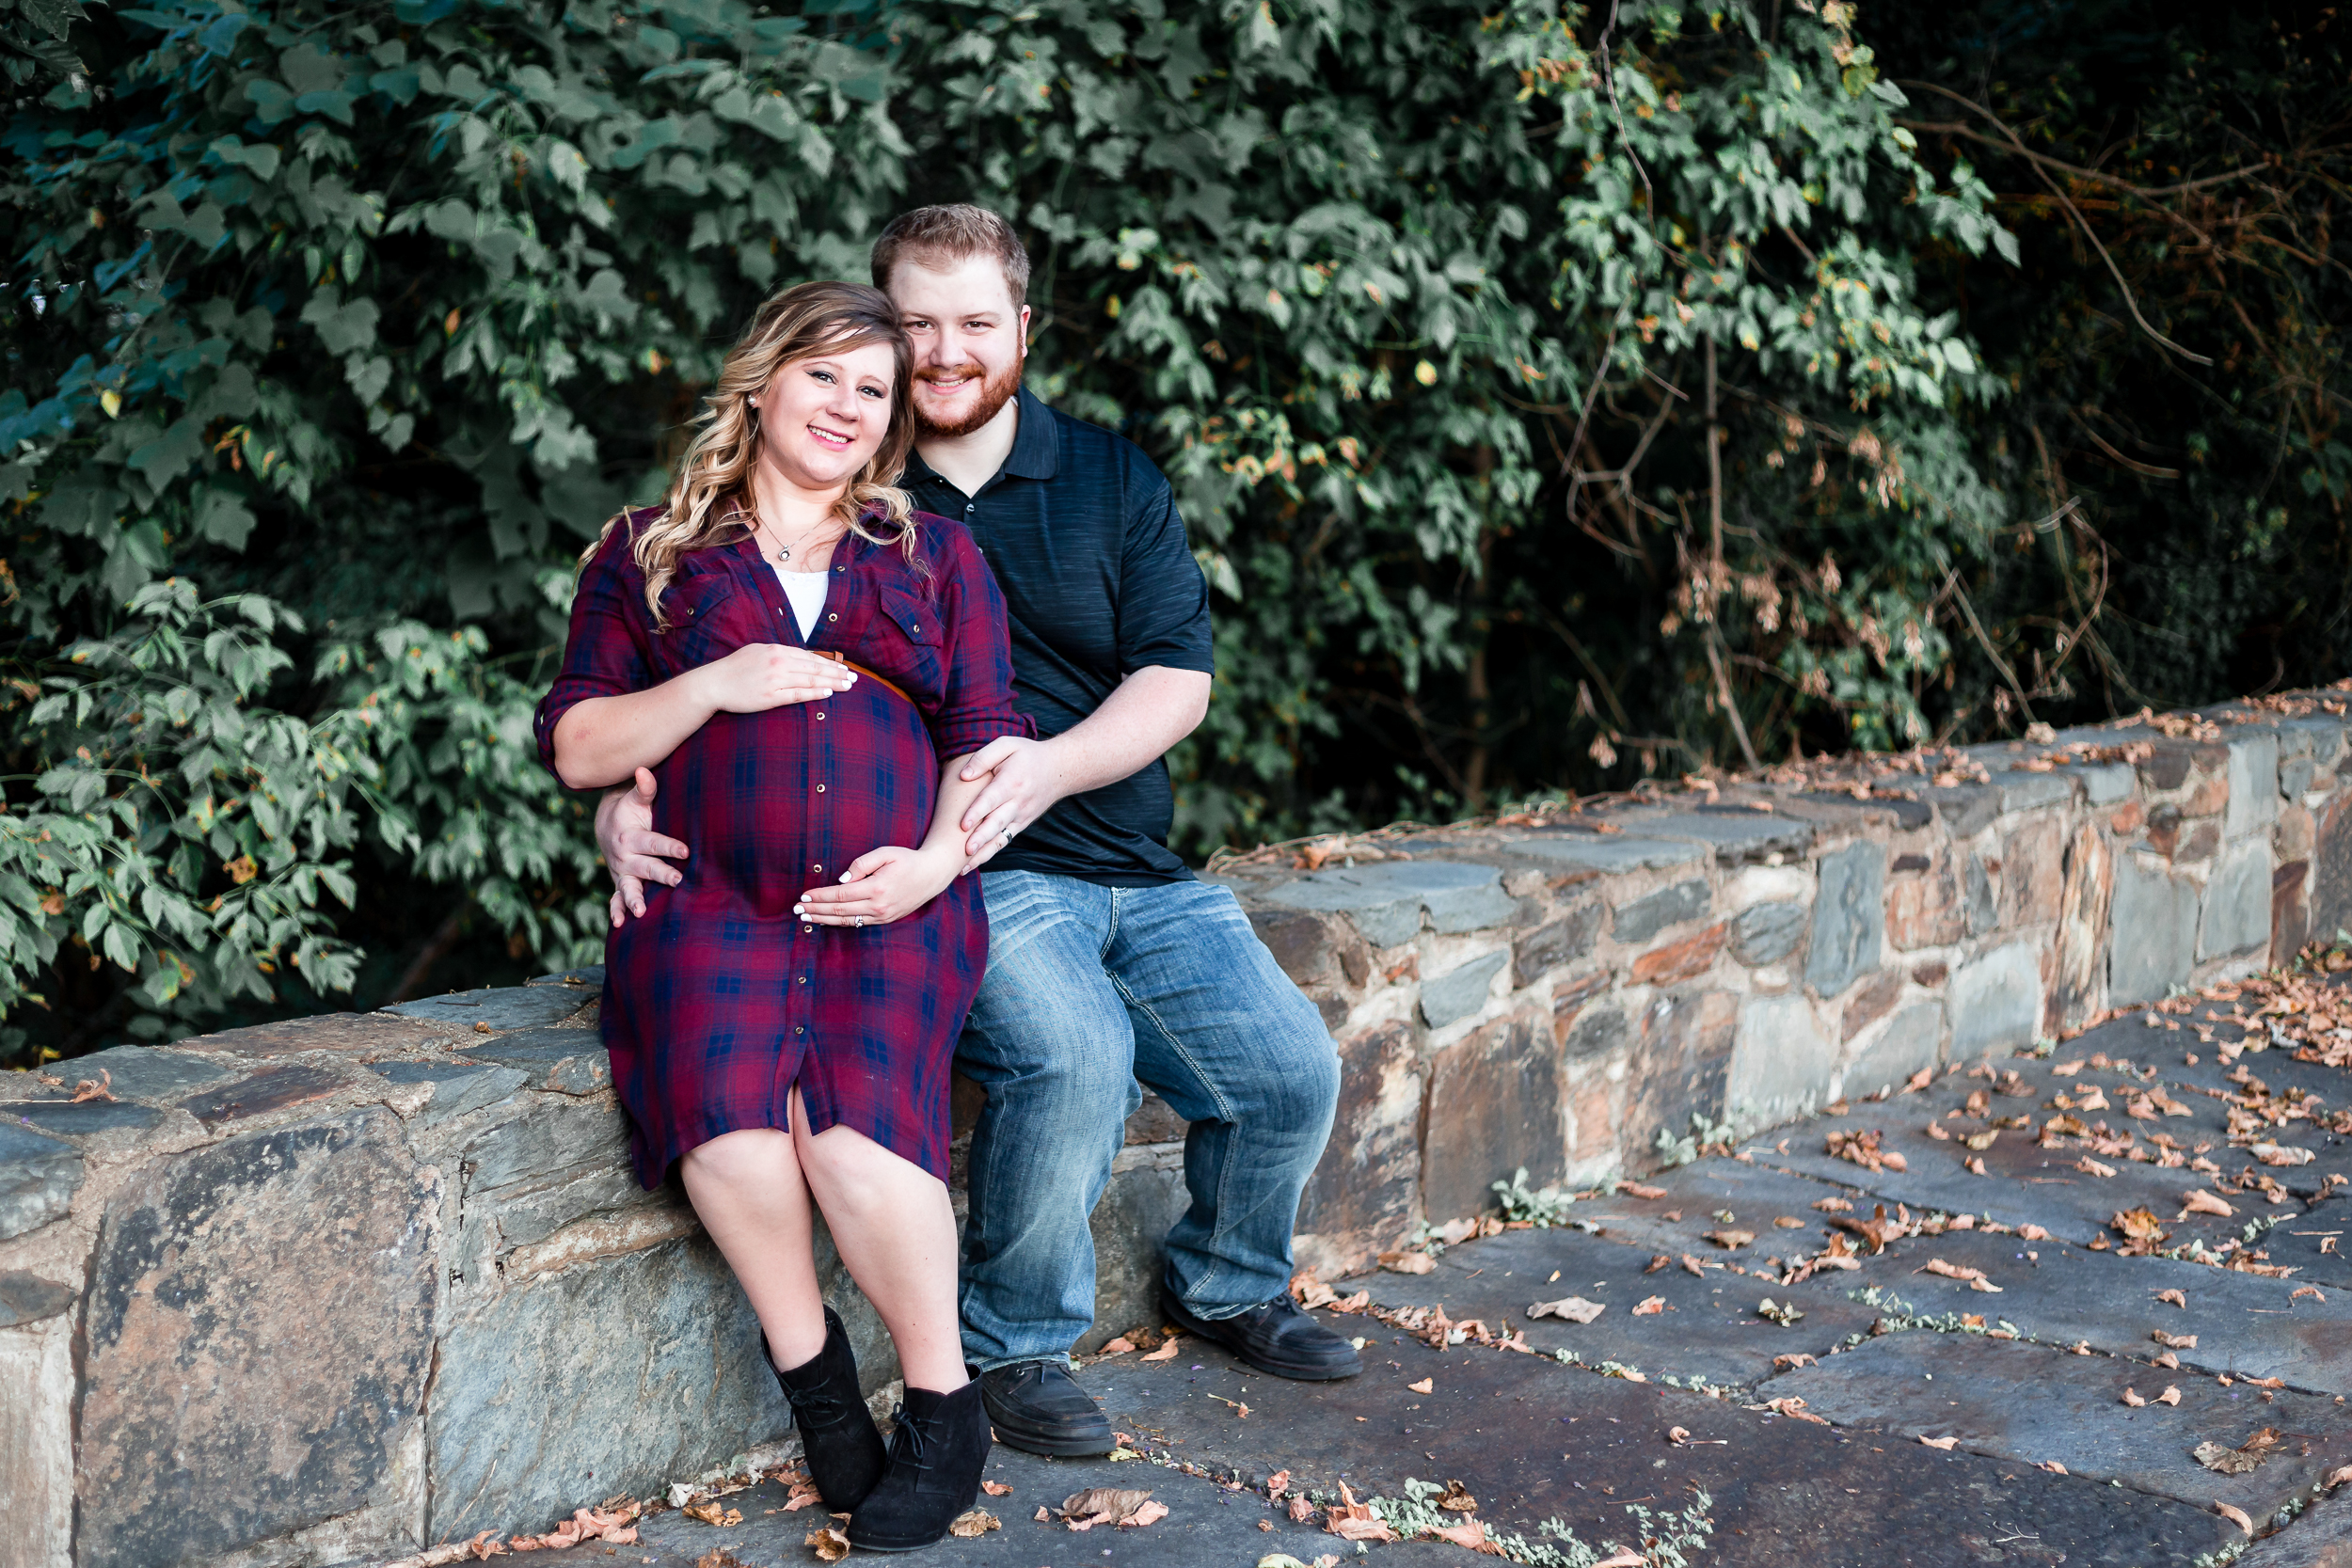 mmw-lynchburg-maternity-photo-session-12.jpg